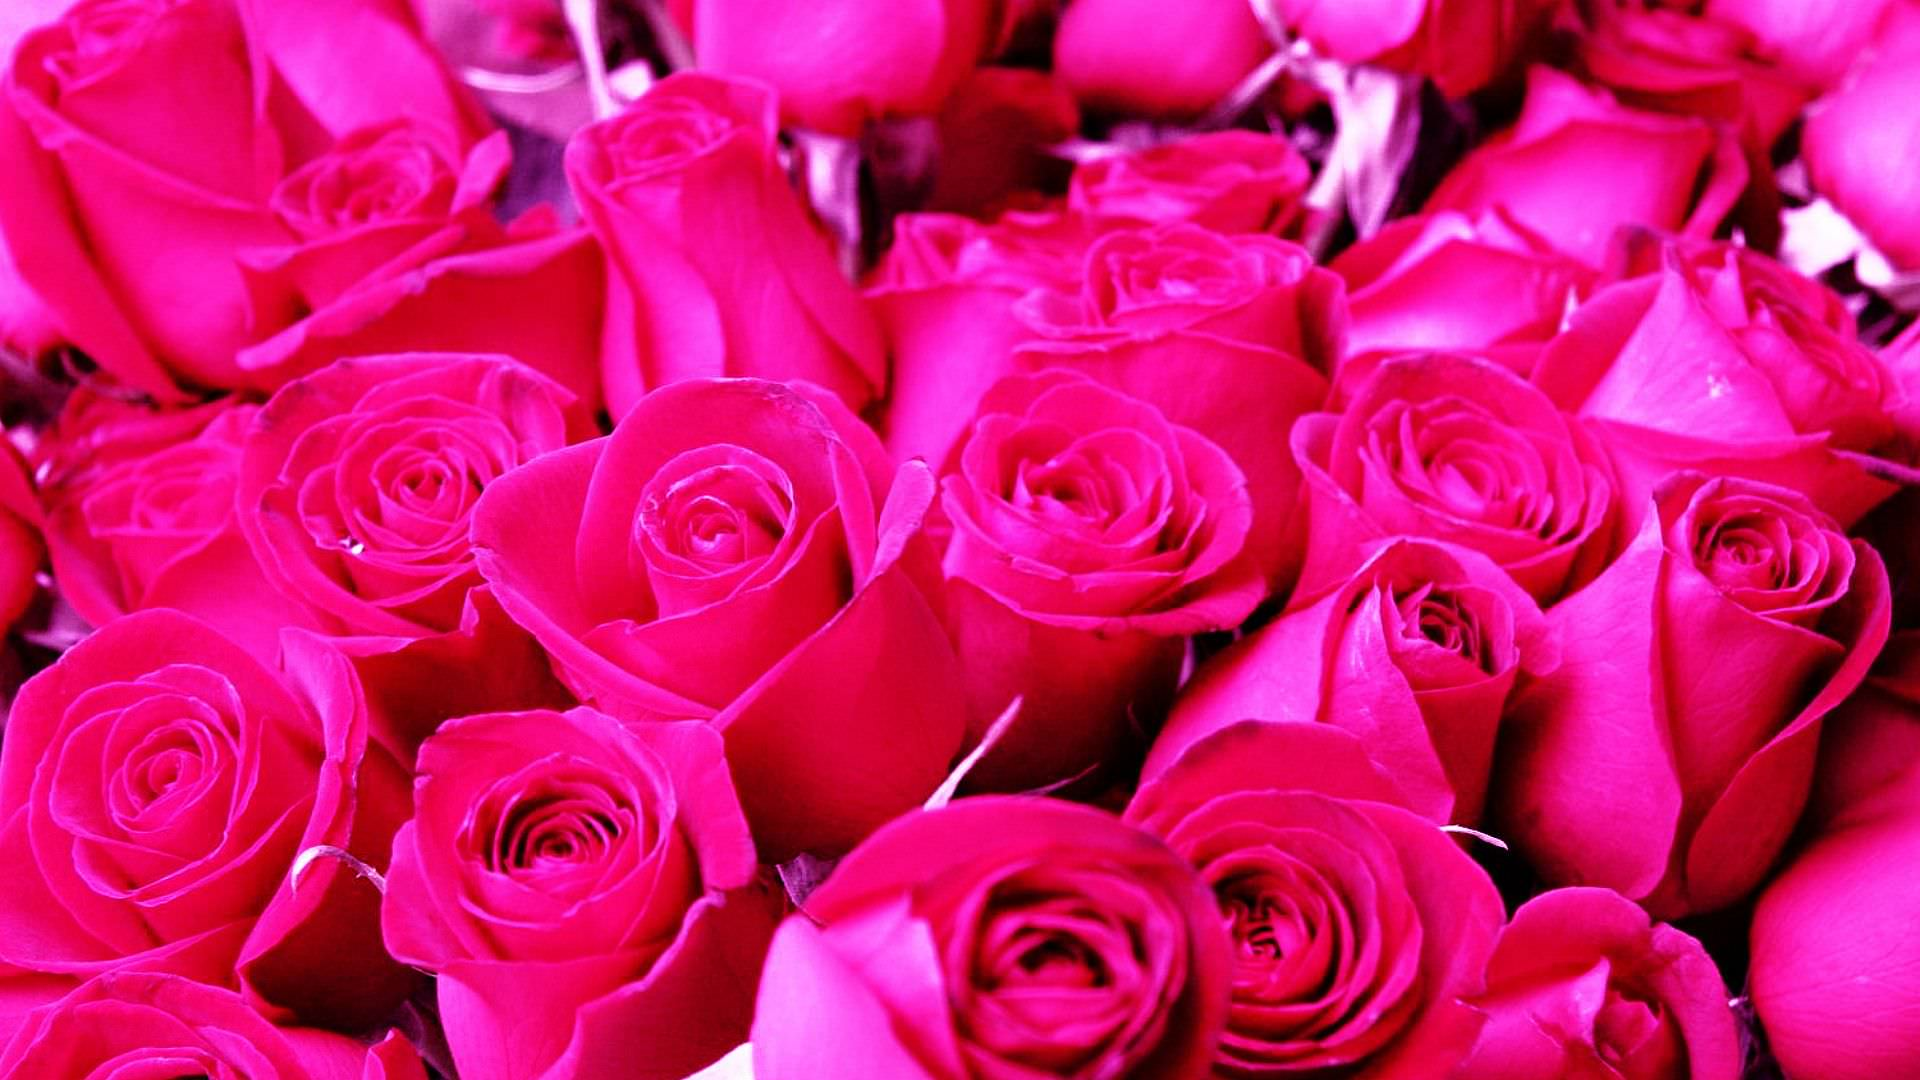 29 roses backgrounds wallpapers images pictures - Pretty roses wallpaper ...